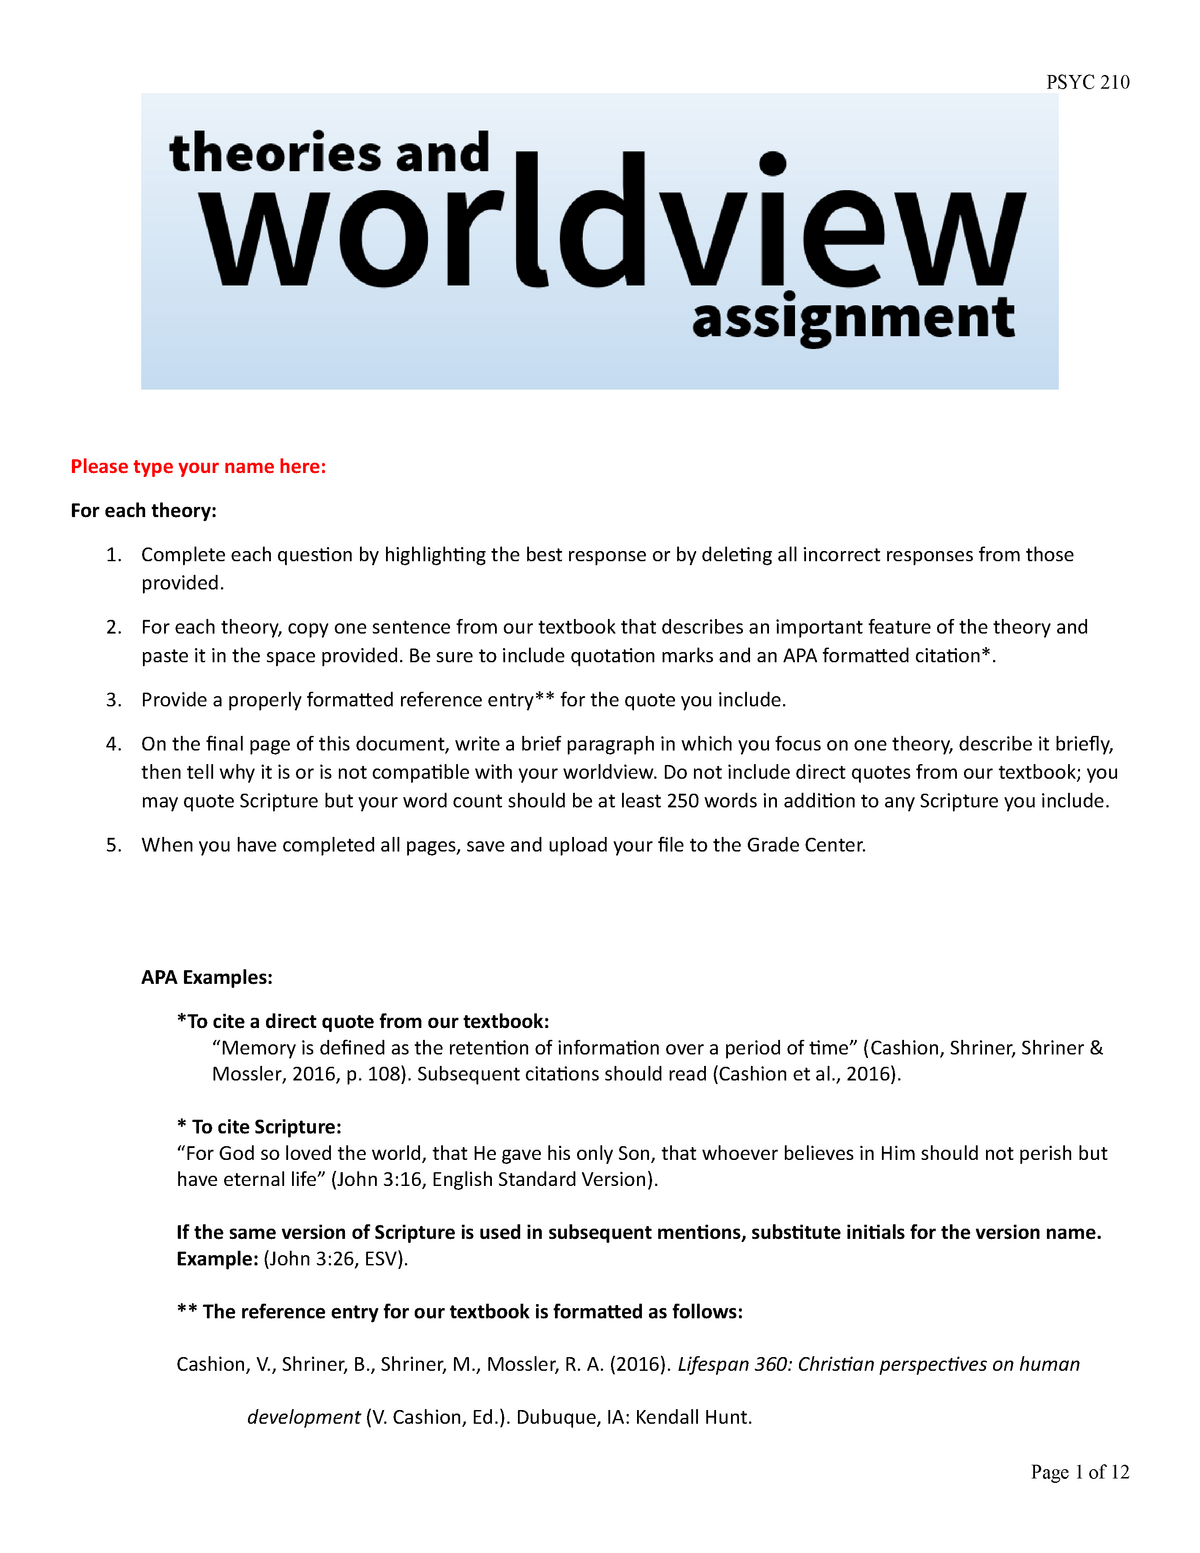 Theories and Worldview Assignment MS Word - PSYC 101